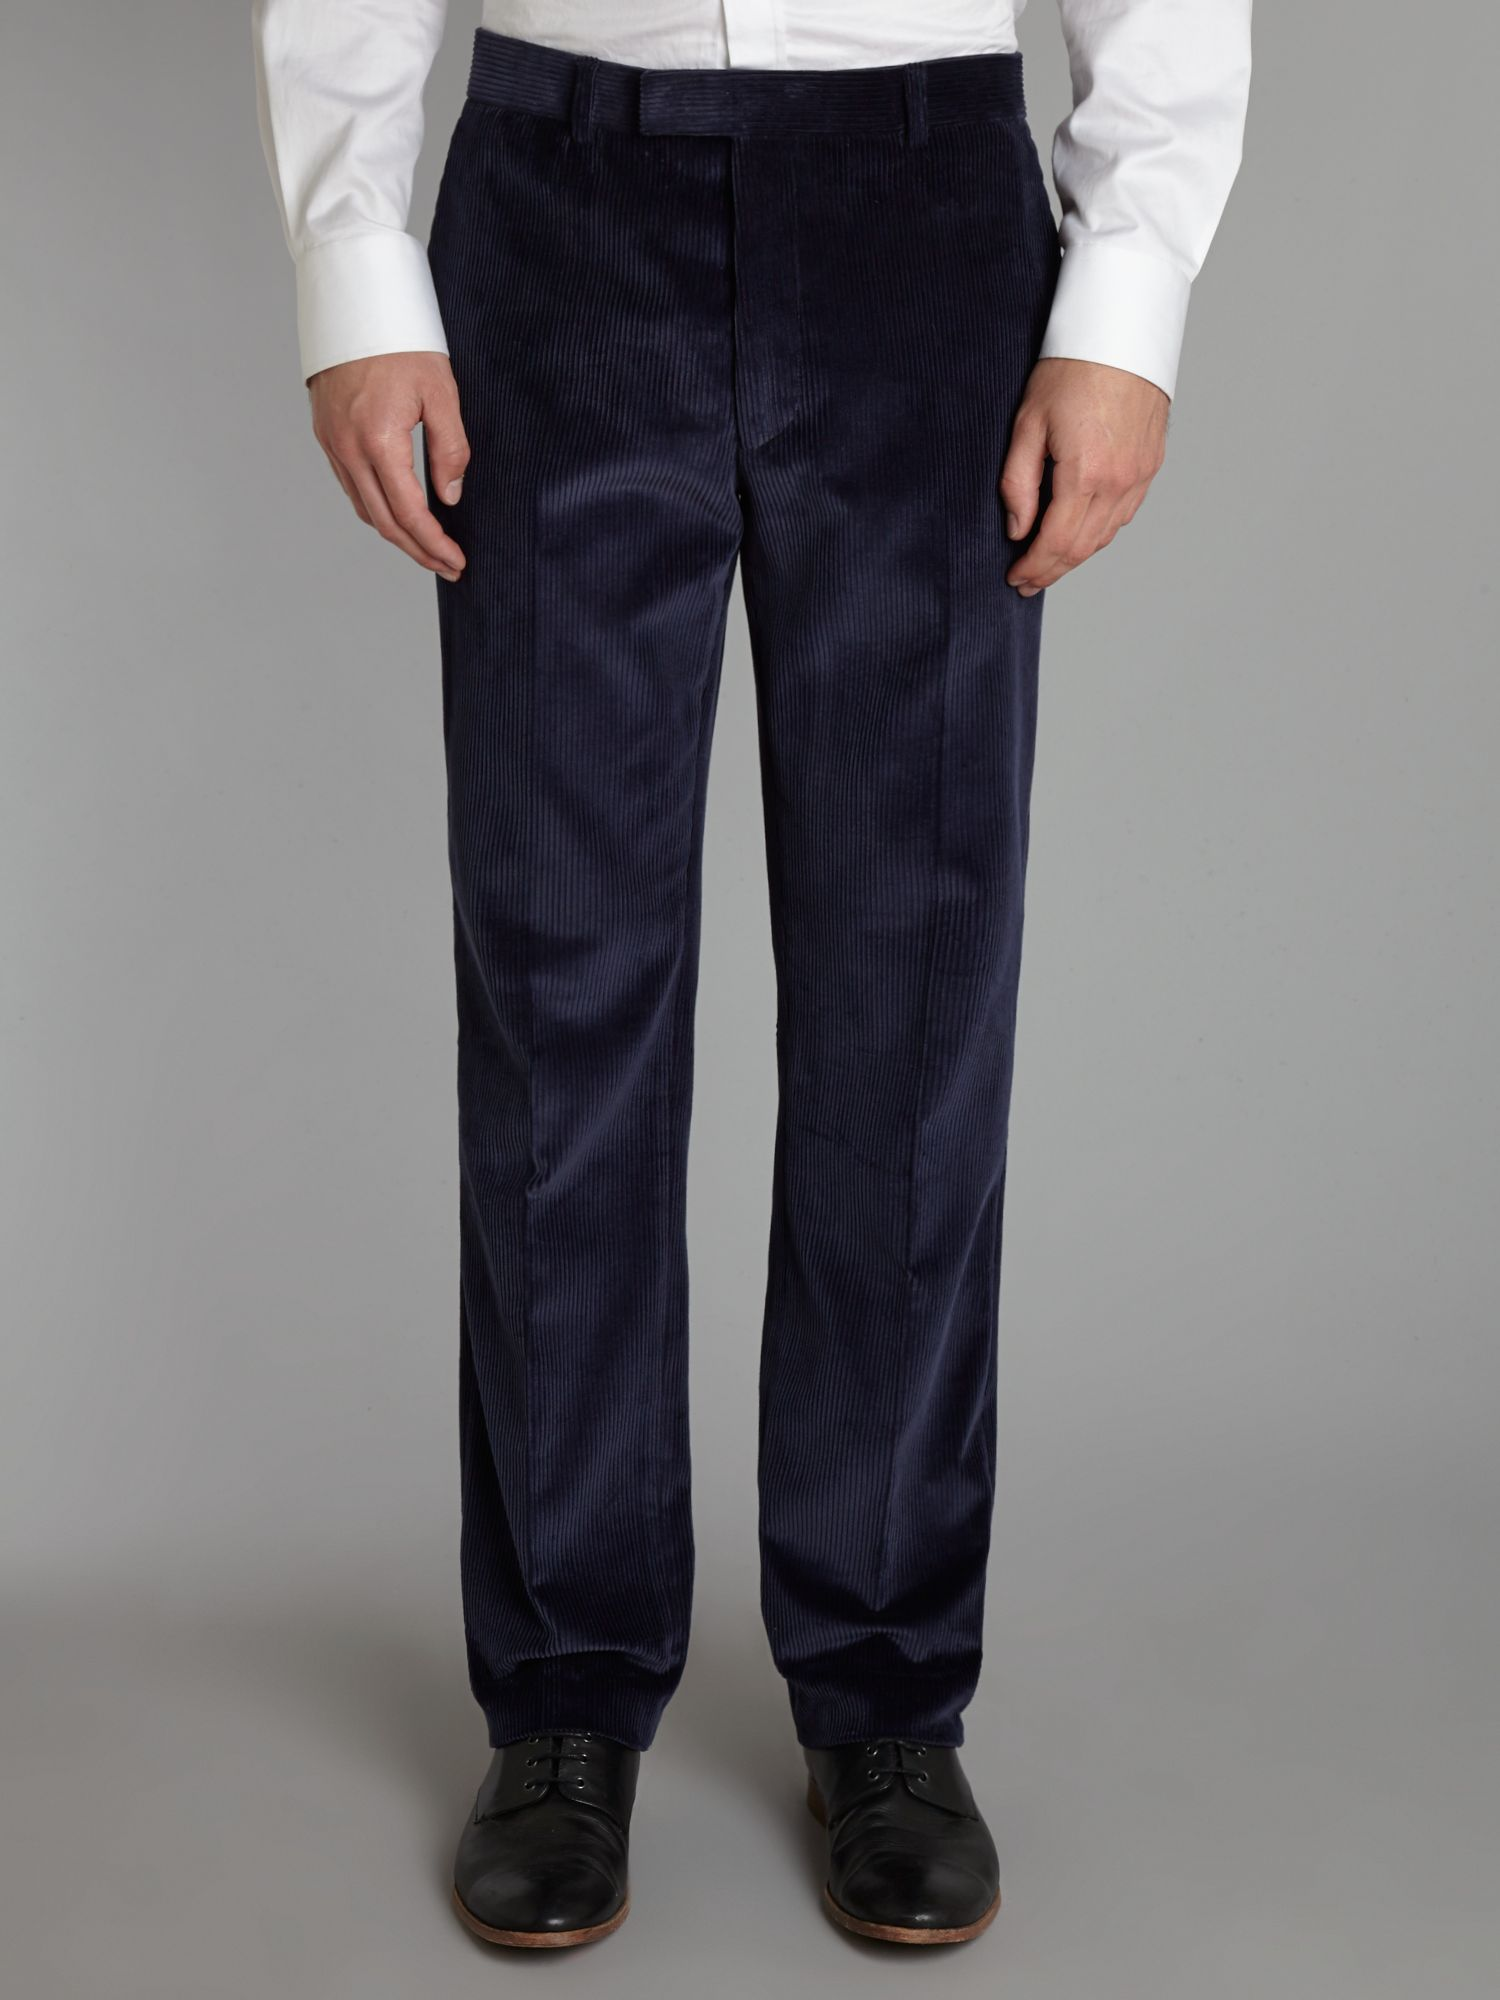 Stirling Cotton Cord Trouser